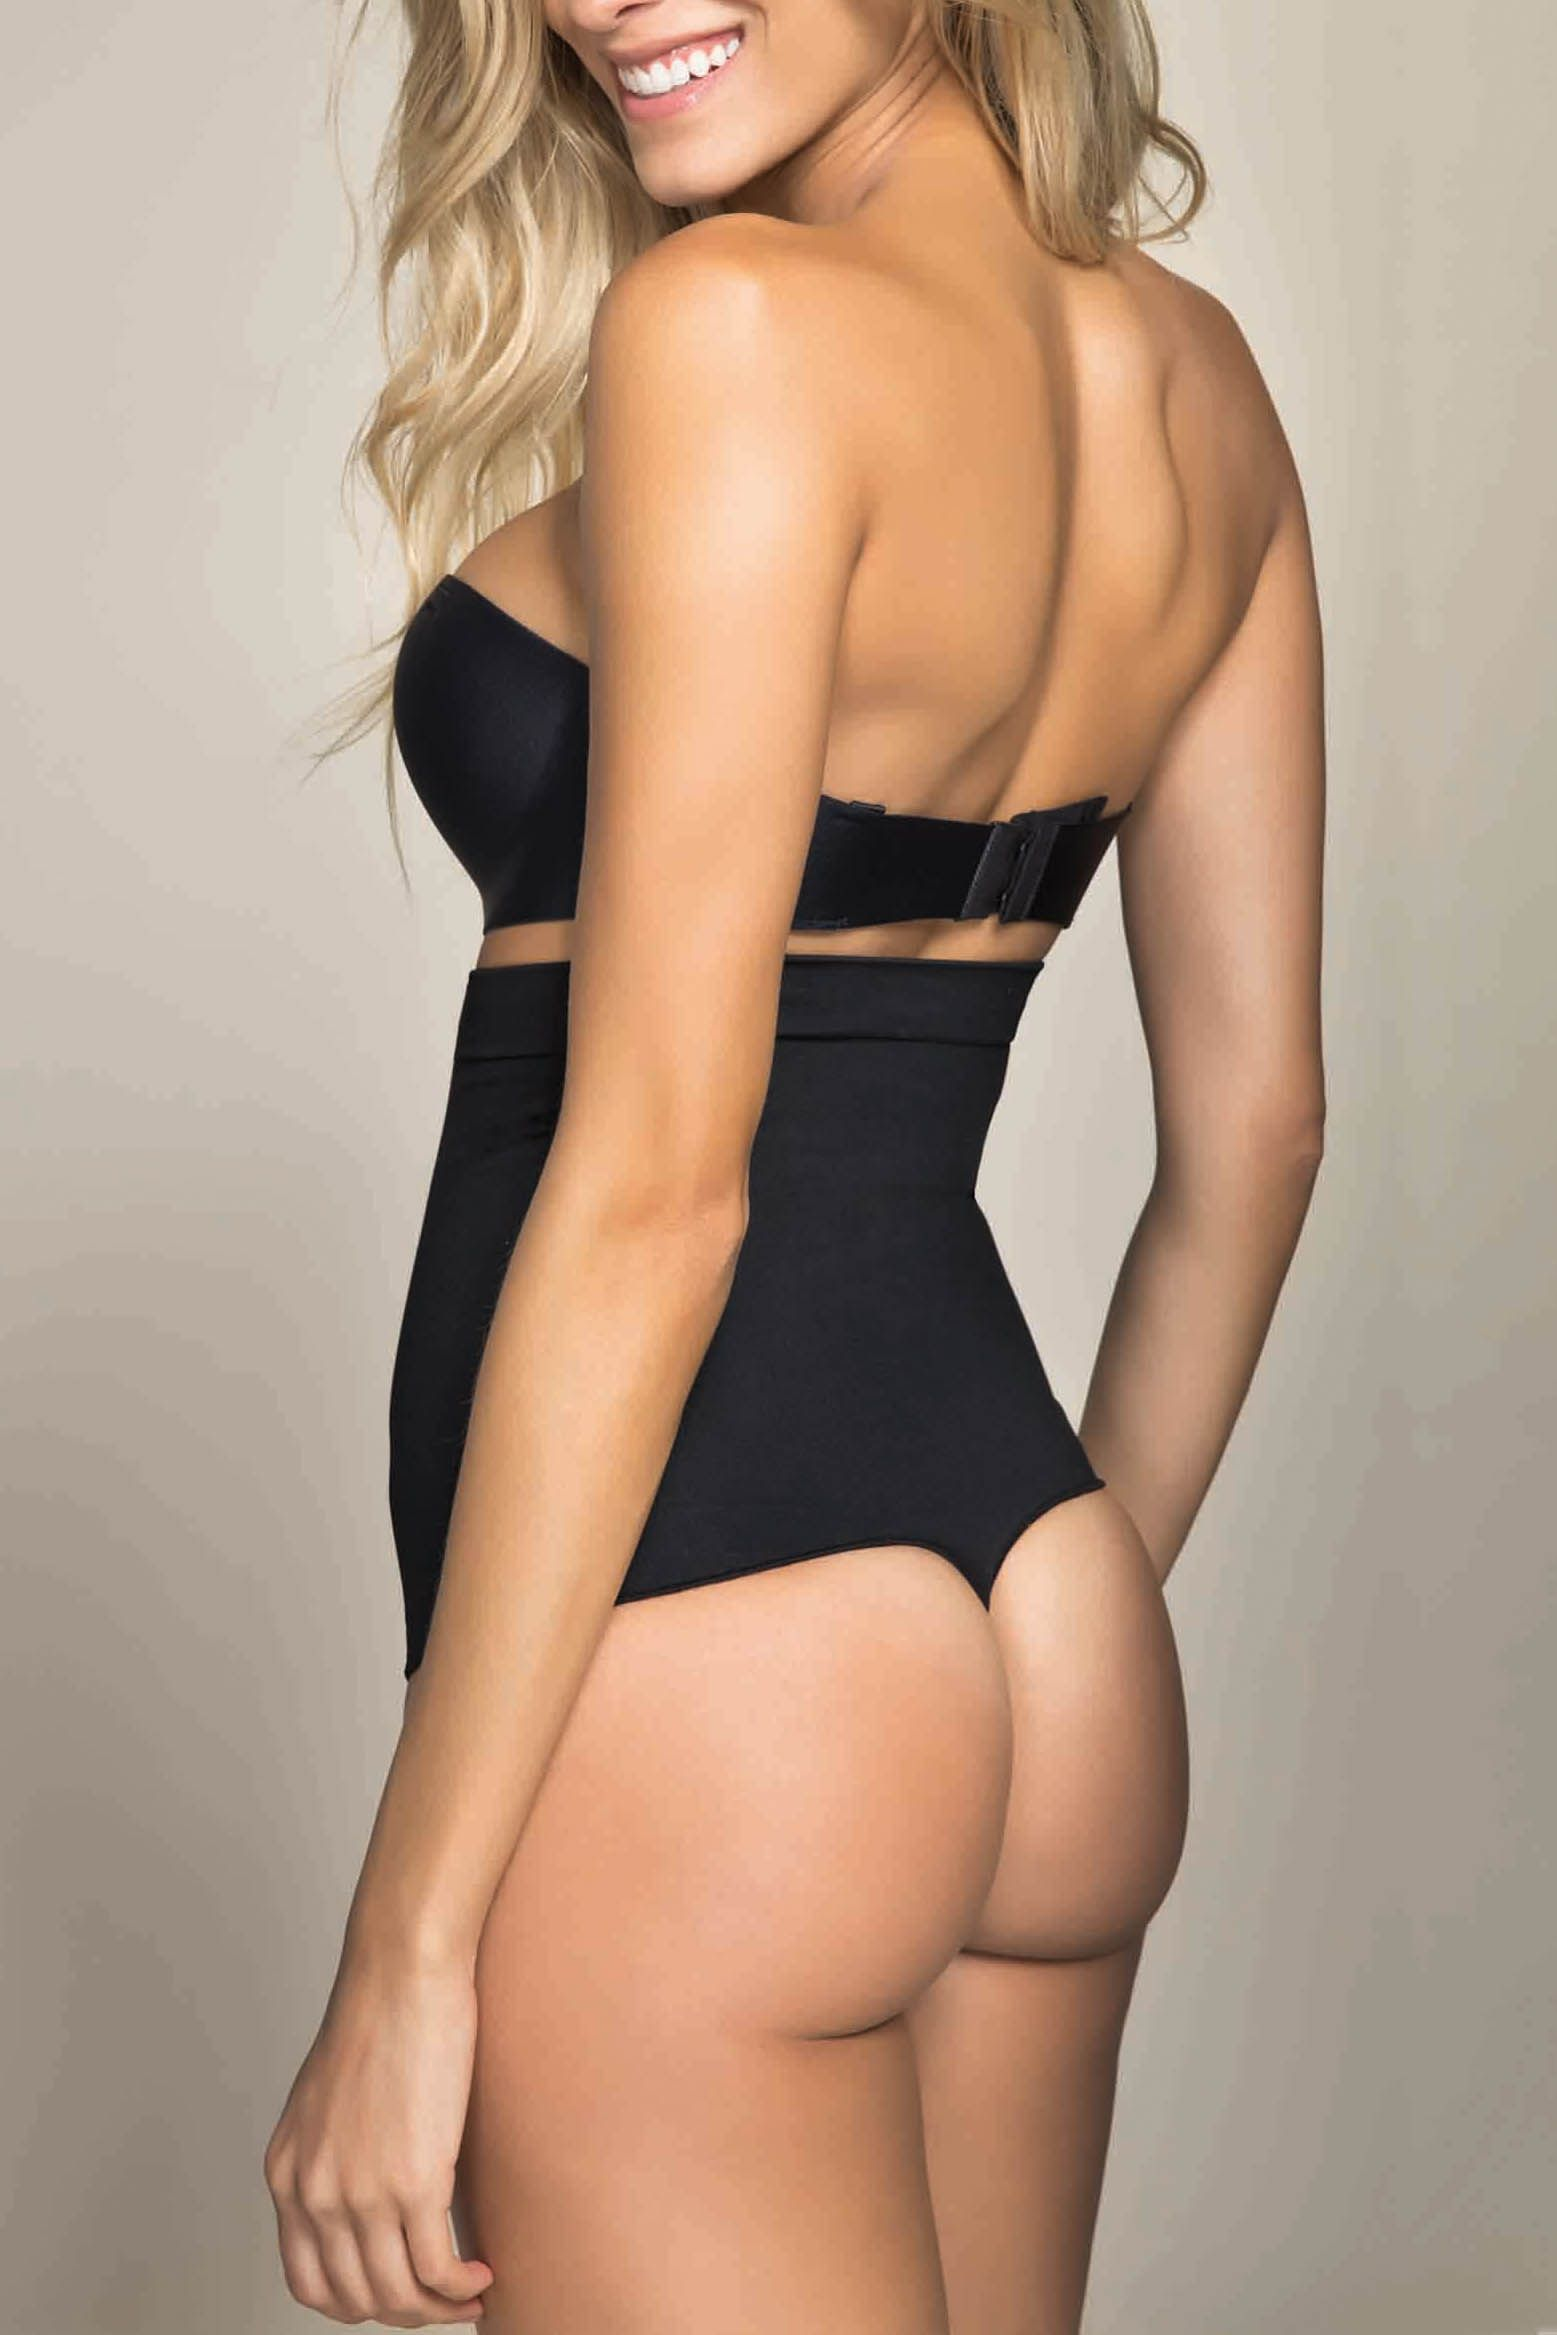 8092d259eff43 Love this seamless body shaper that fit the body perfectly